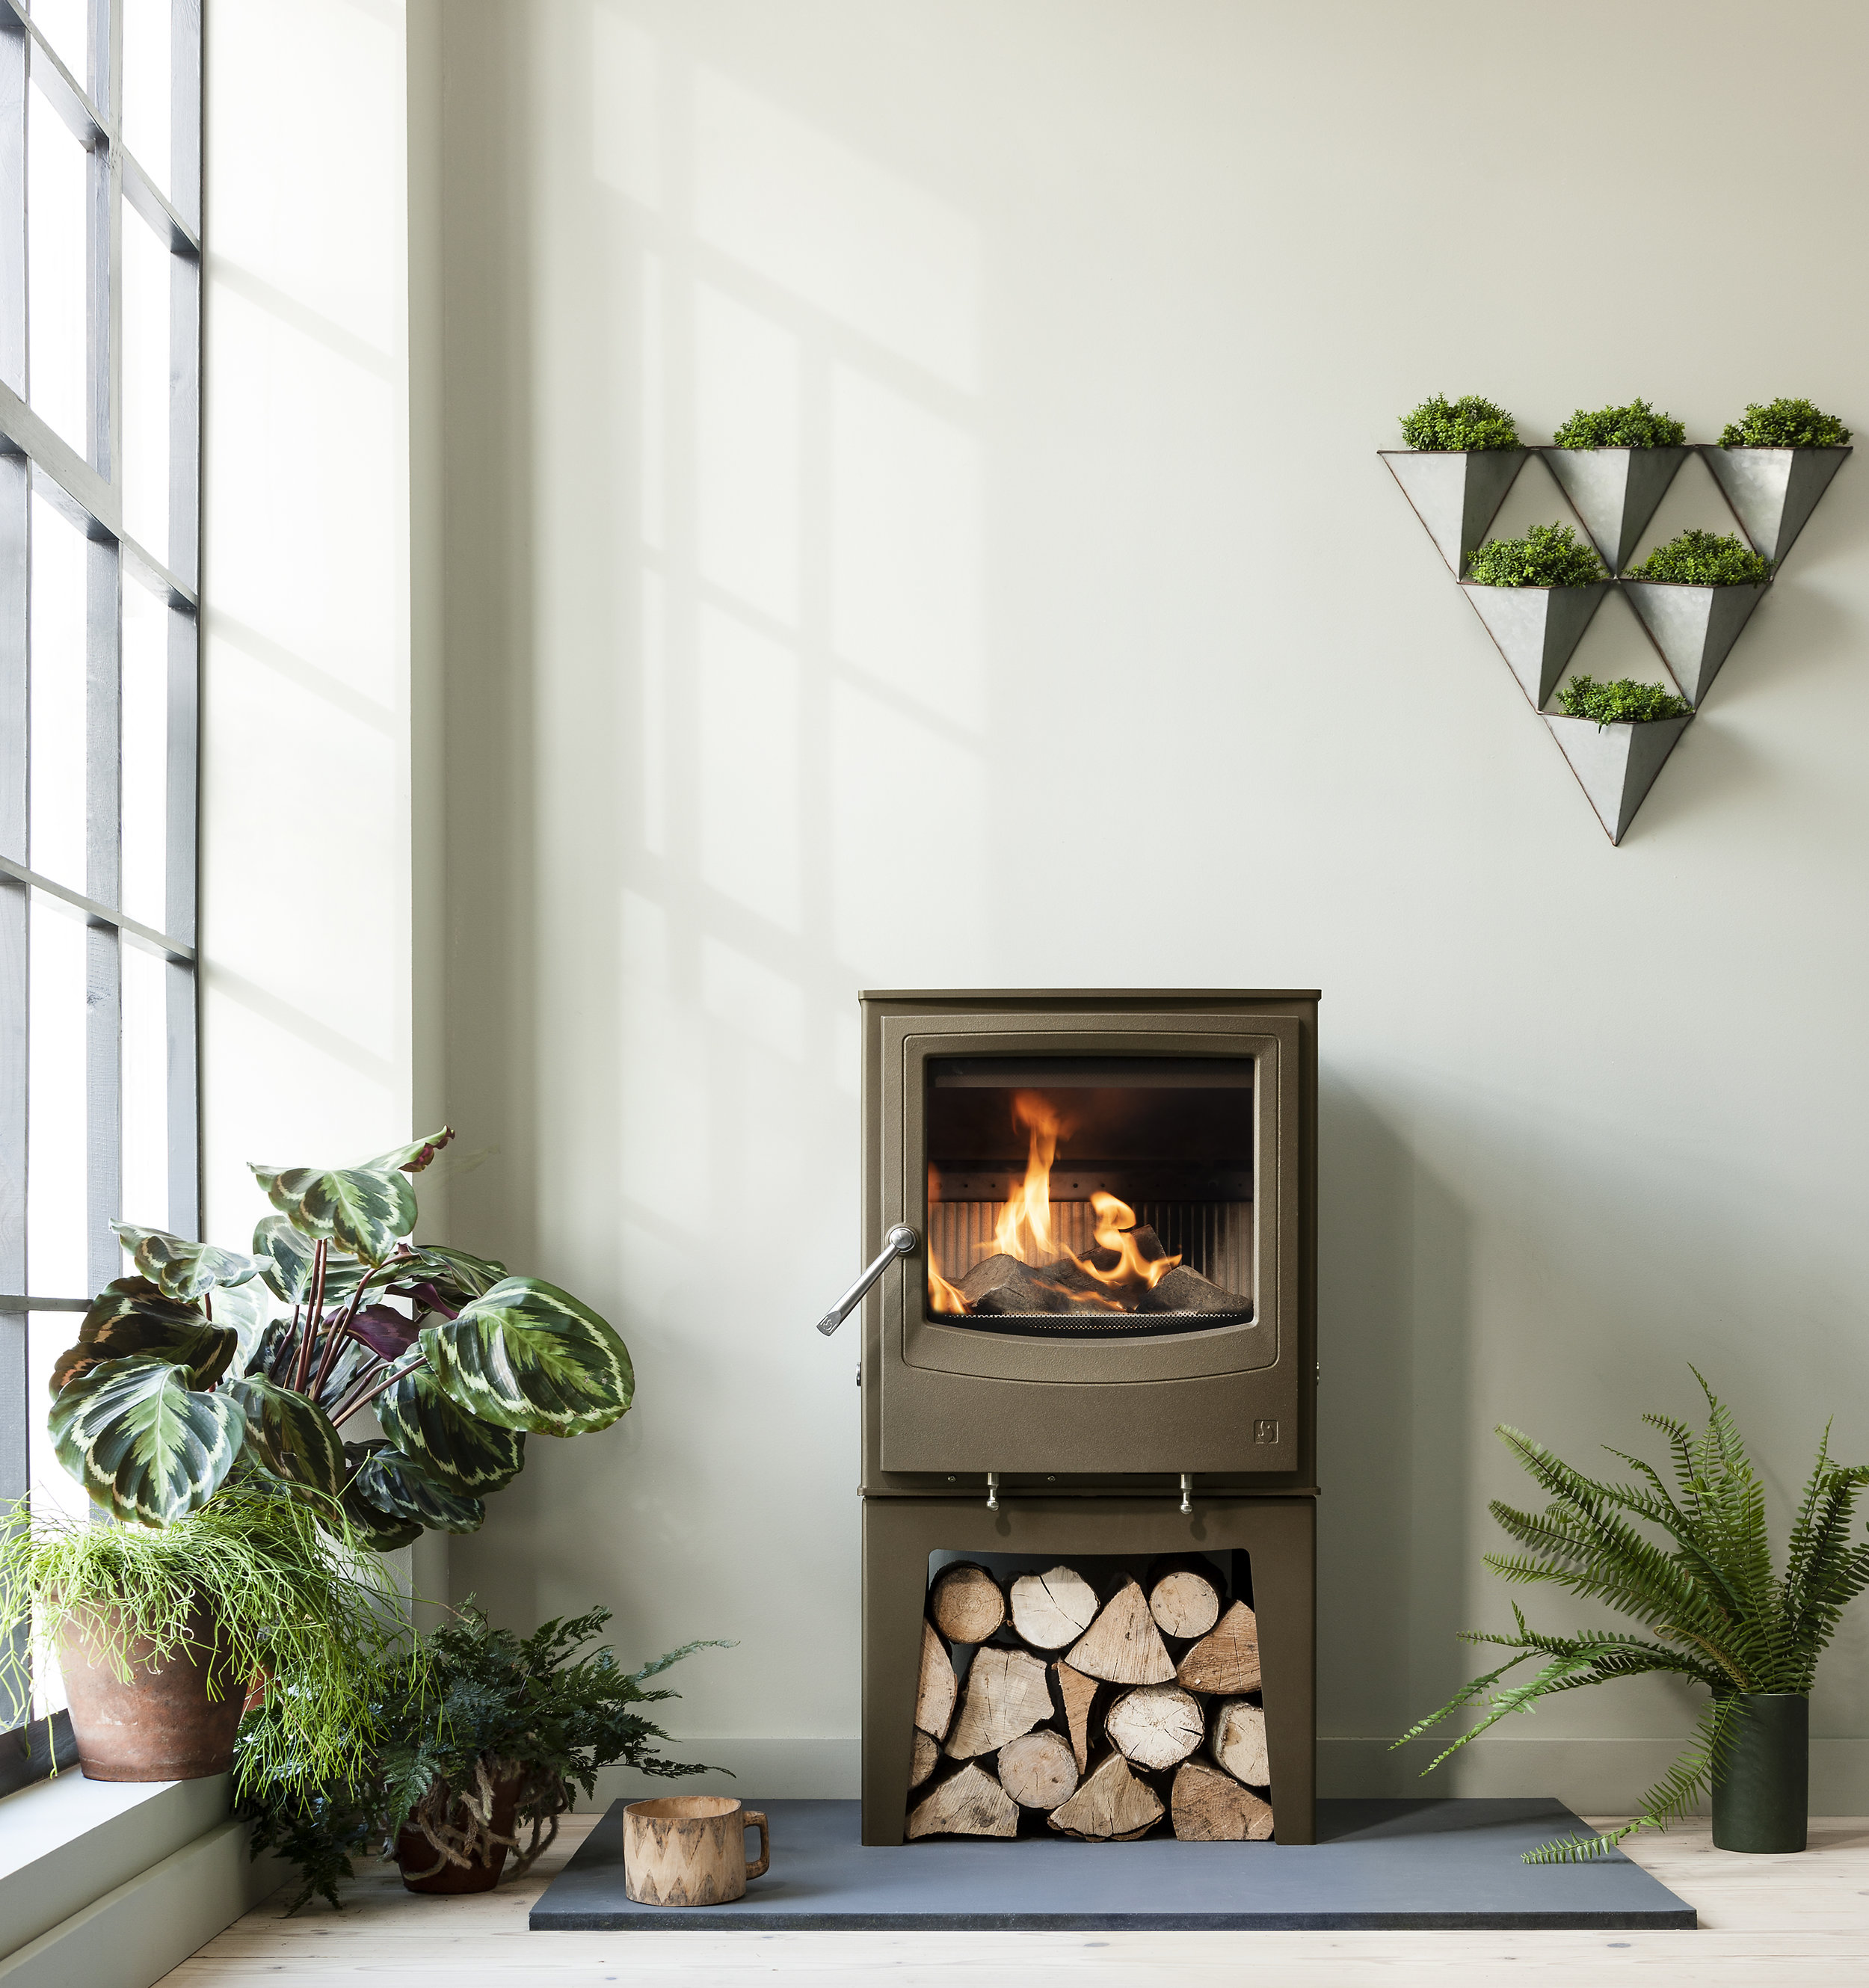 Sage - Pinterest has named sage the most 'up-and-coming' colour of the season, with saves for posts containing the colour up by 170 percent. We think its pale, cool tones make it ideal for use as a modern neutral in your home; abandon the traditional beiges and whites, and opt for blonde woods and whites to create a minimal, natural look. Natural shapes and colours are an increasingly popular trend. While technology is trading its stringent angles for softened curves, subtle green hues have found their way on to catwalks and into our homes. This wood-burning stove from Arada in chestnut brown compliments the soft sage colour palette to create a natural, autumnal space.